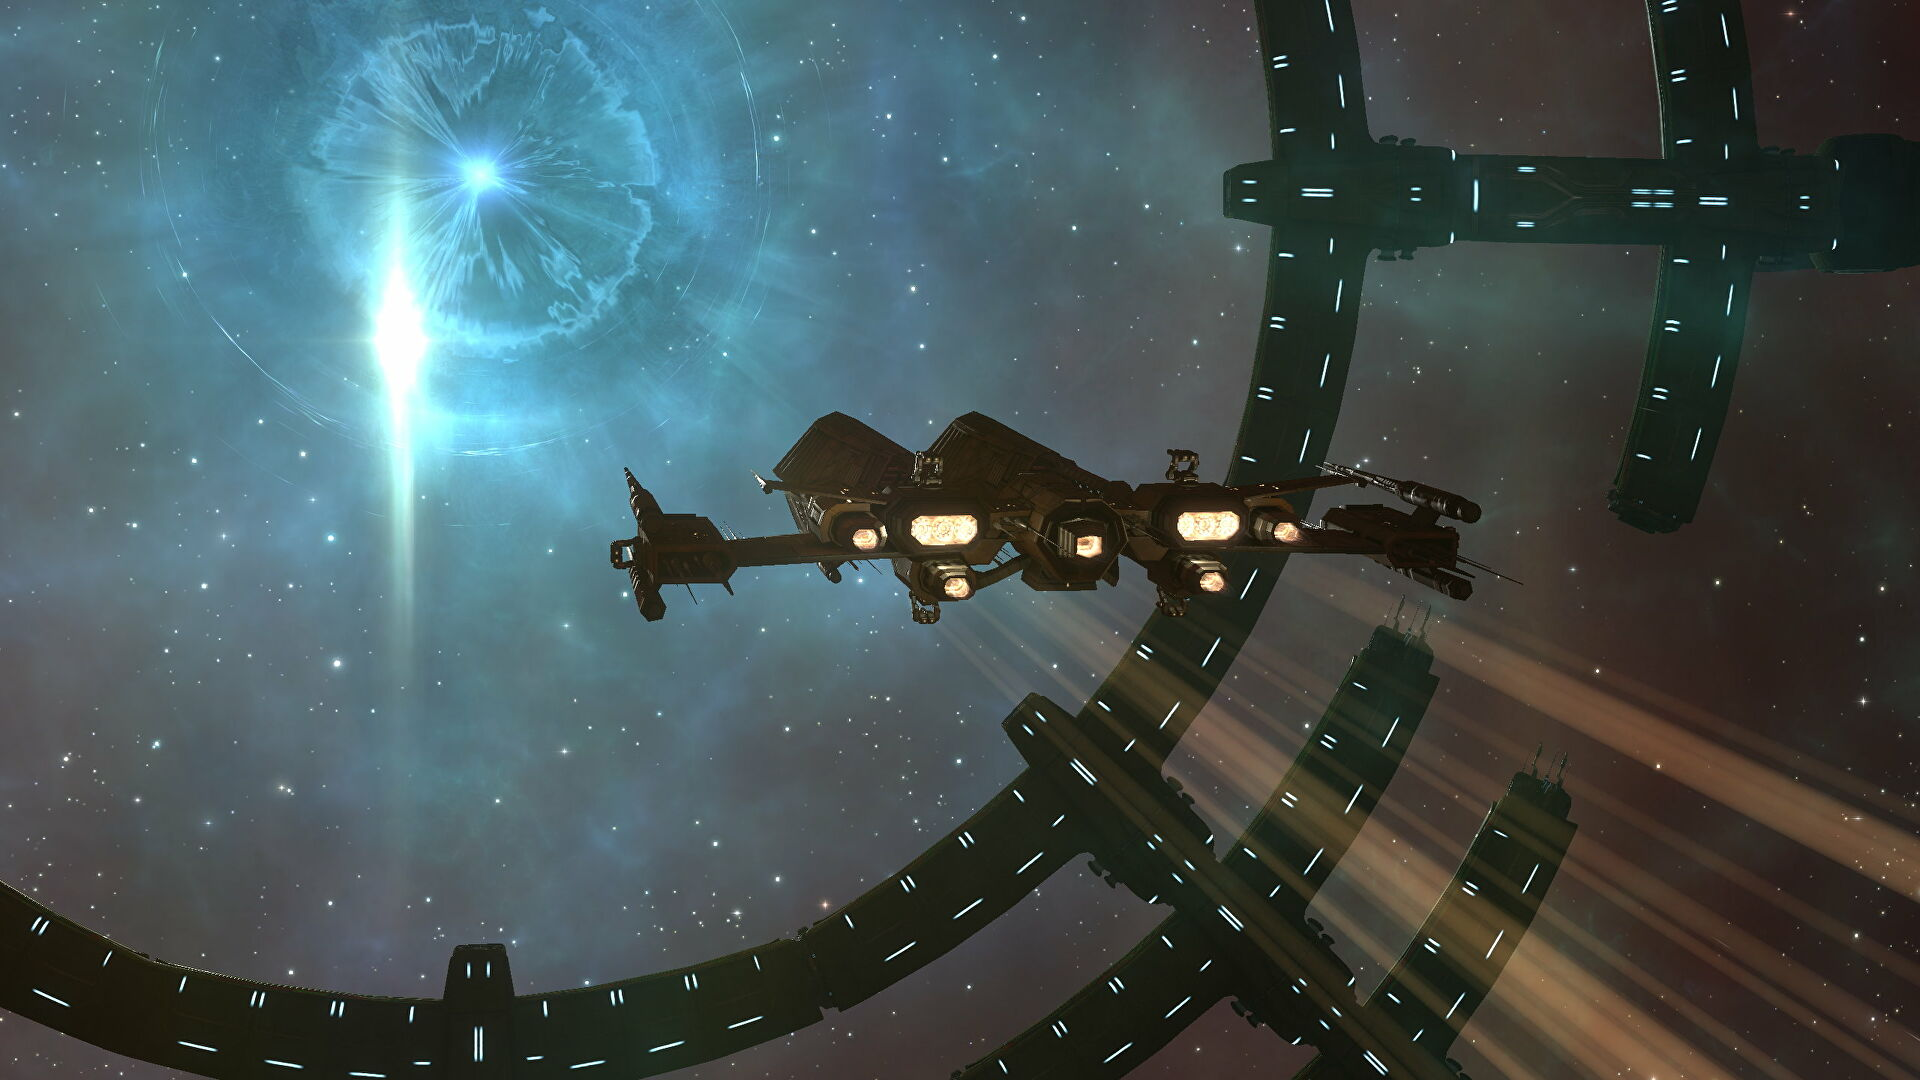 Eve Online coming to browsers thanks to cloud gaming with Eve Anywhere